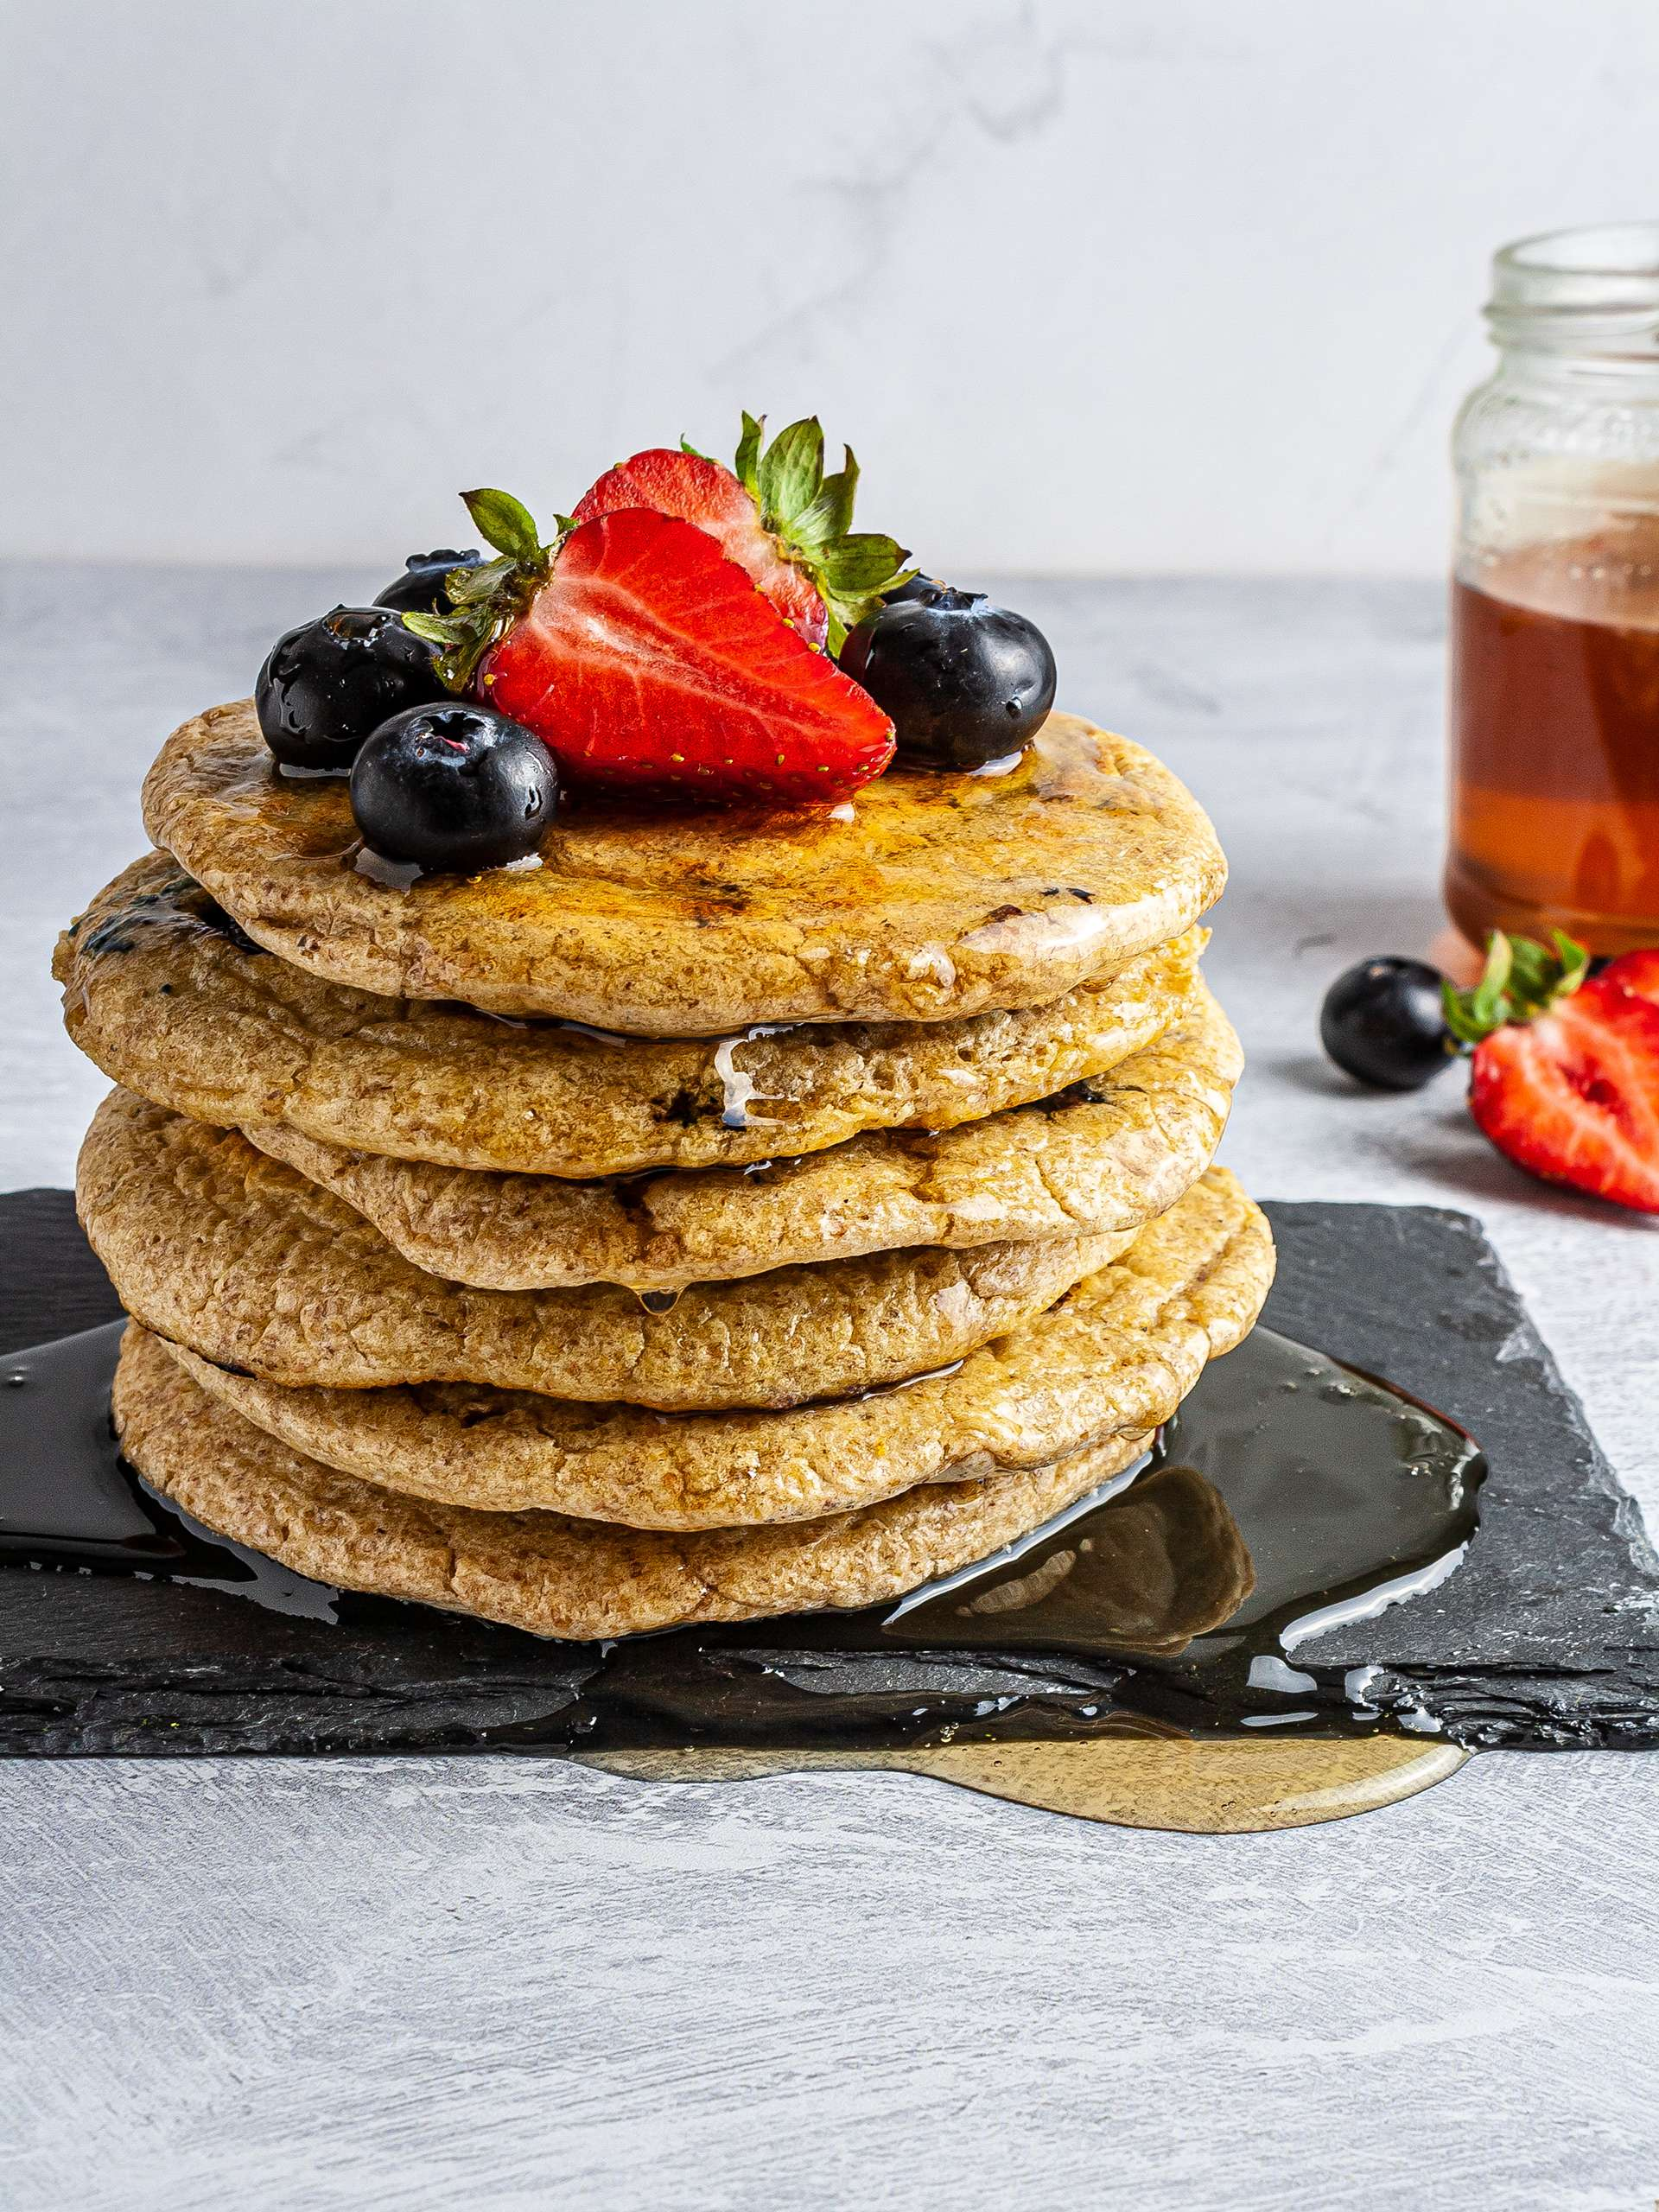 Stacked oatmeal pancakes with blueberries and strawberries